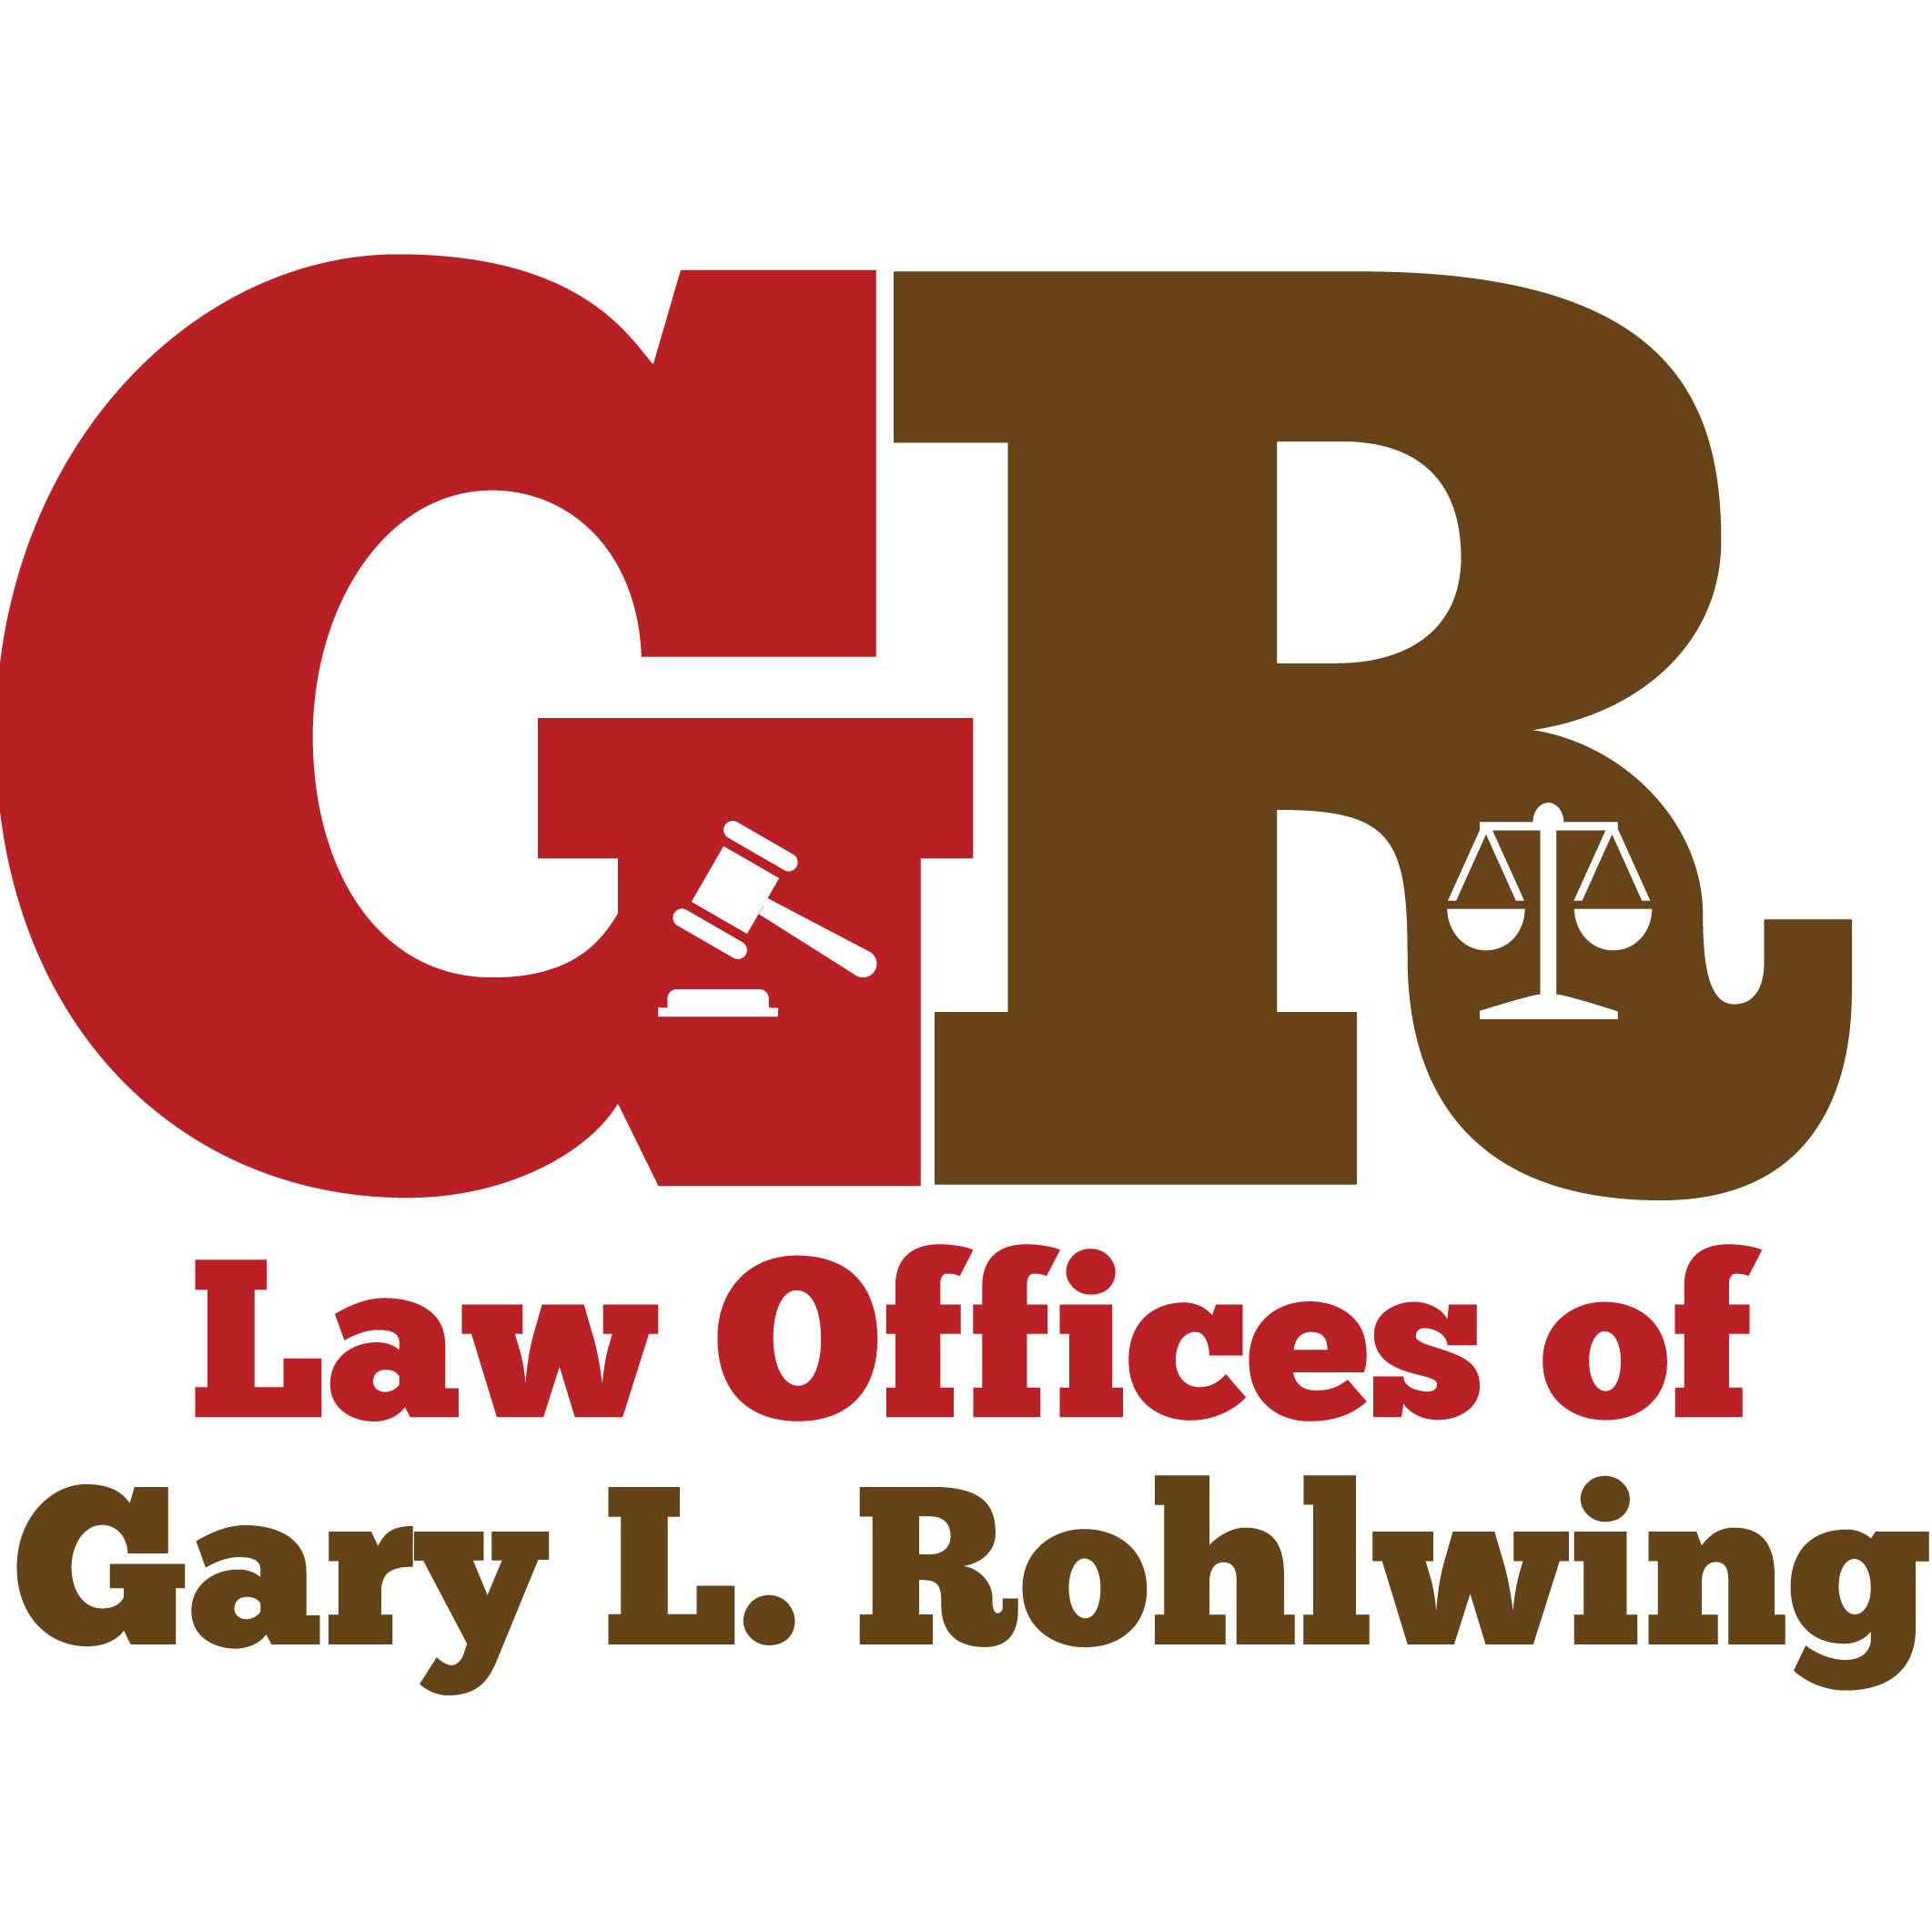 Law Offices of Gary L Rohlwing image 8